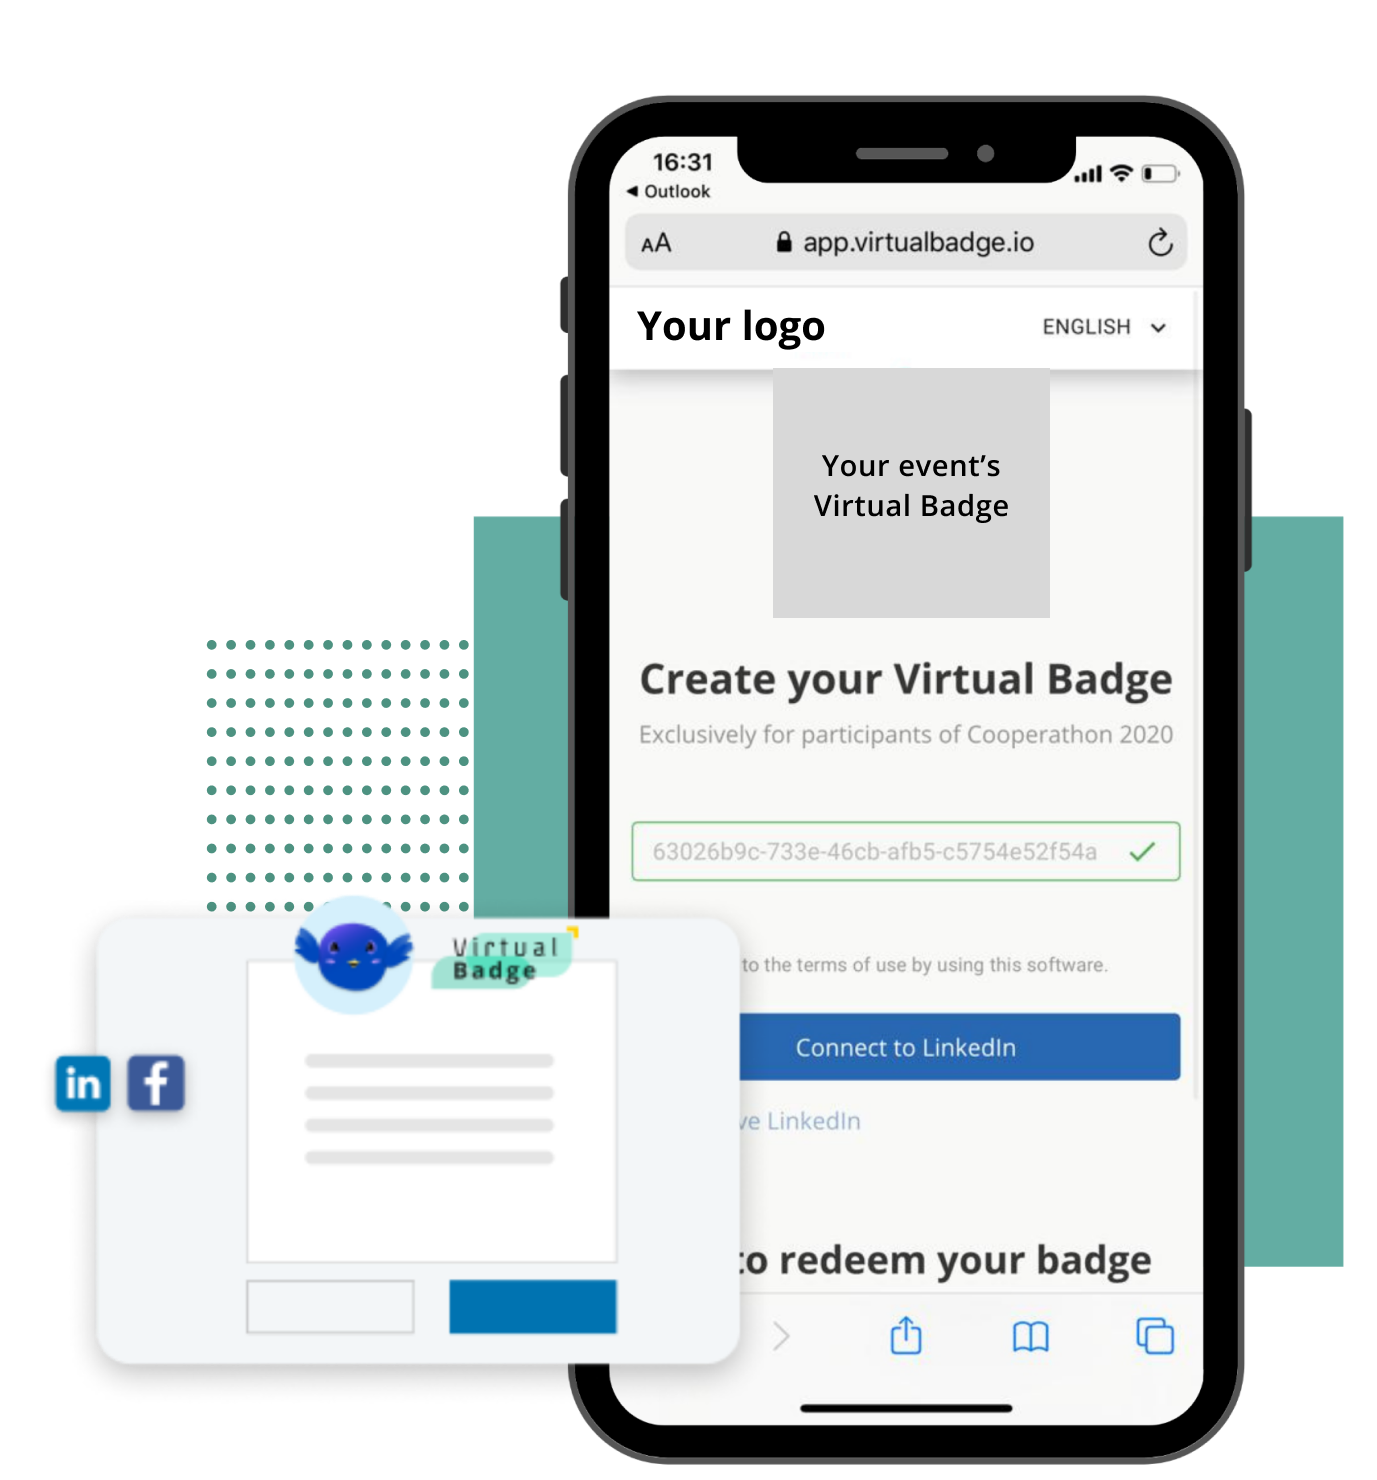 Iphone frama for users of virtual badges